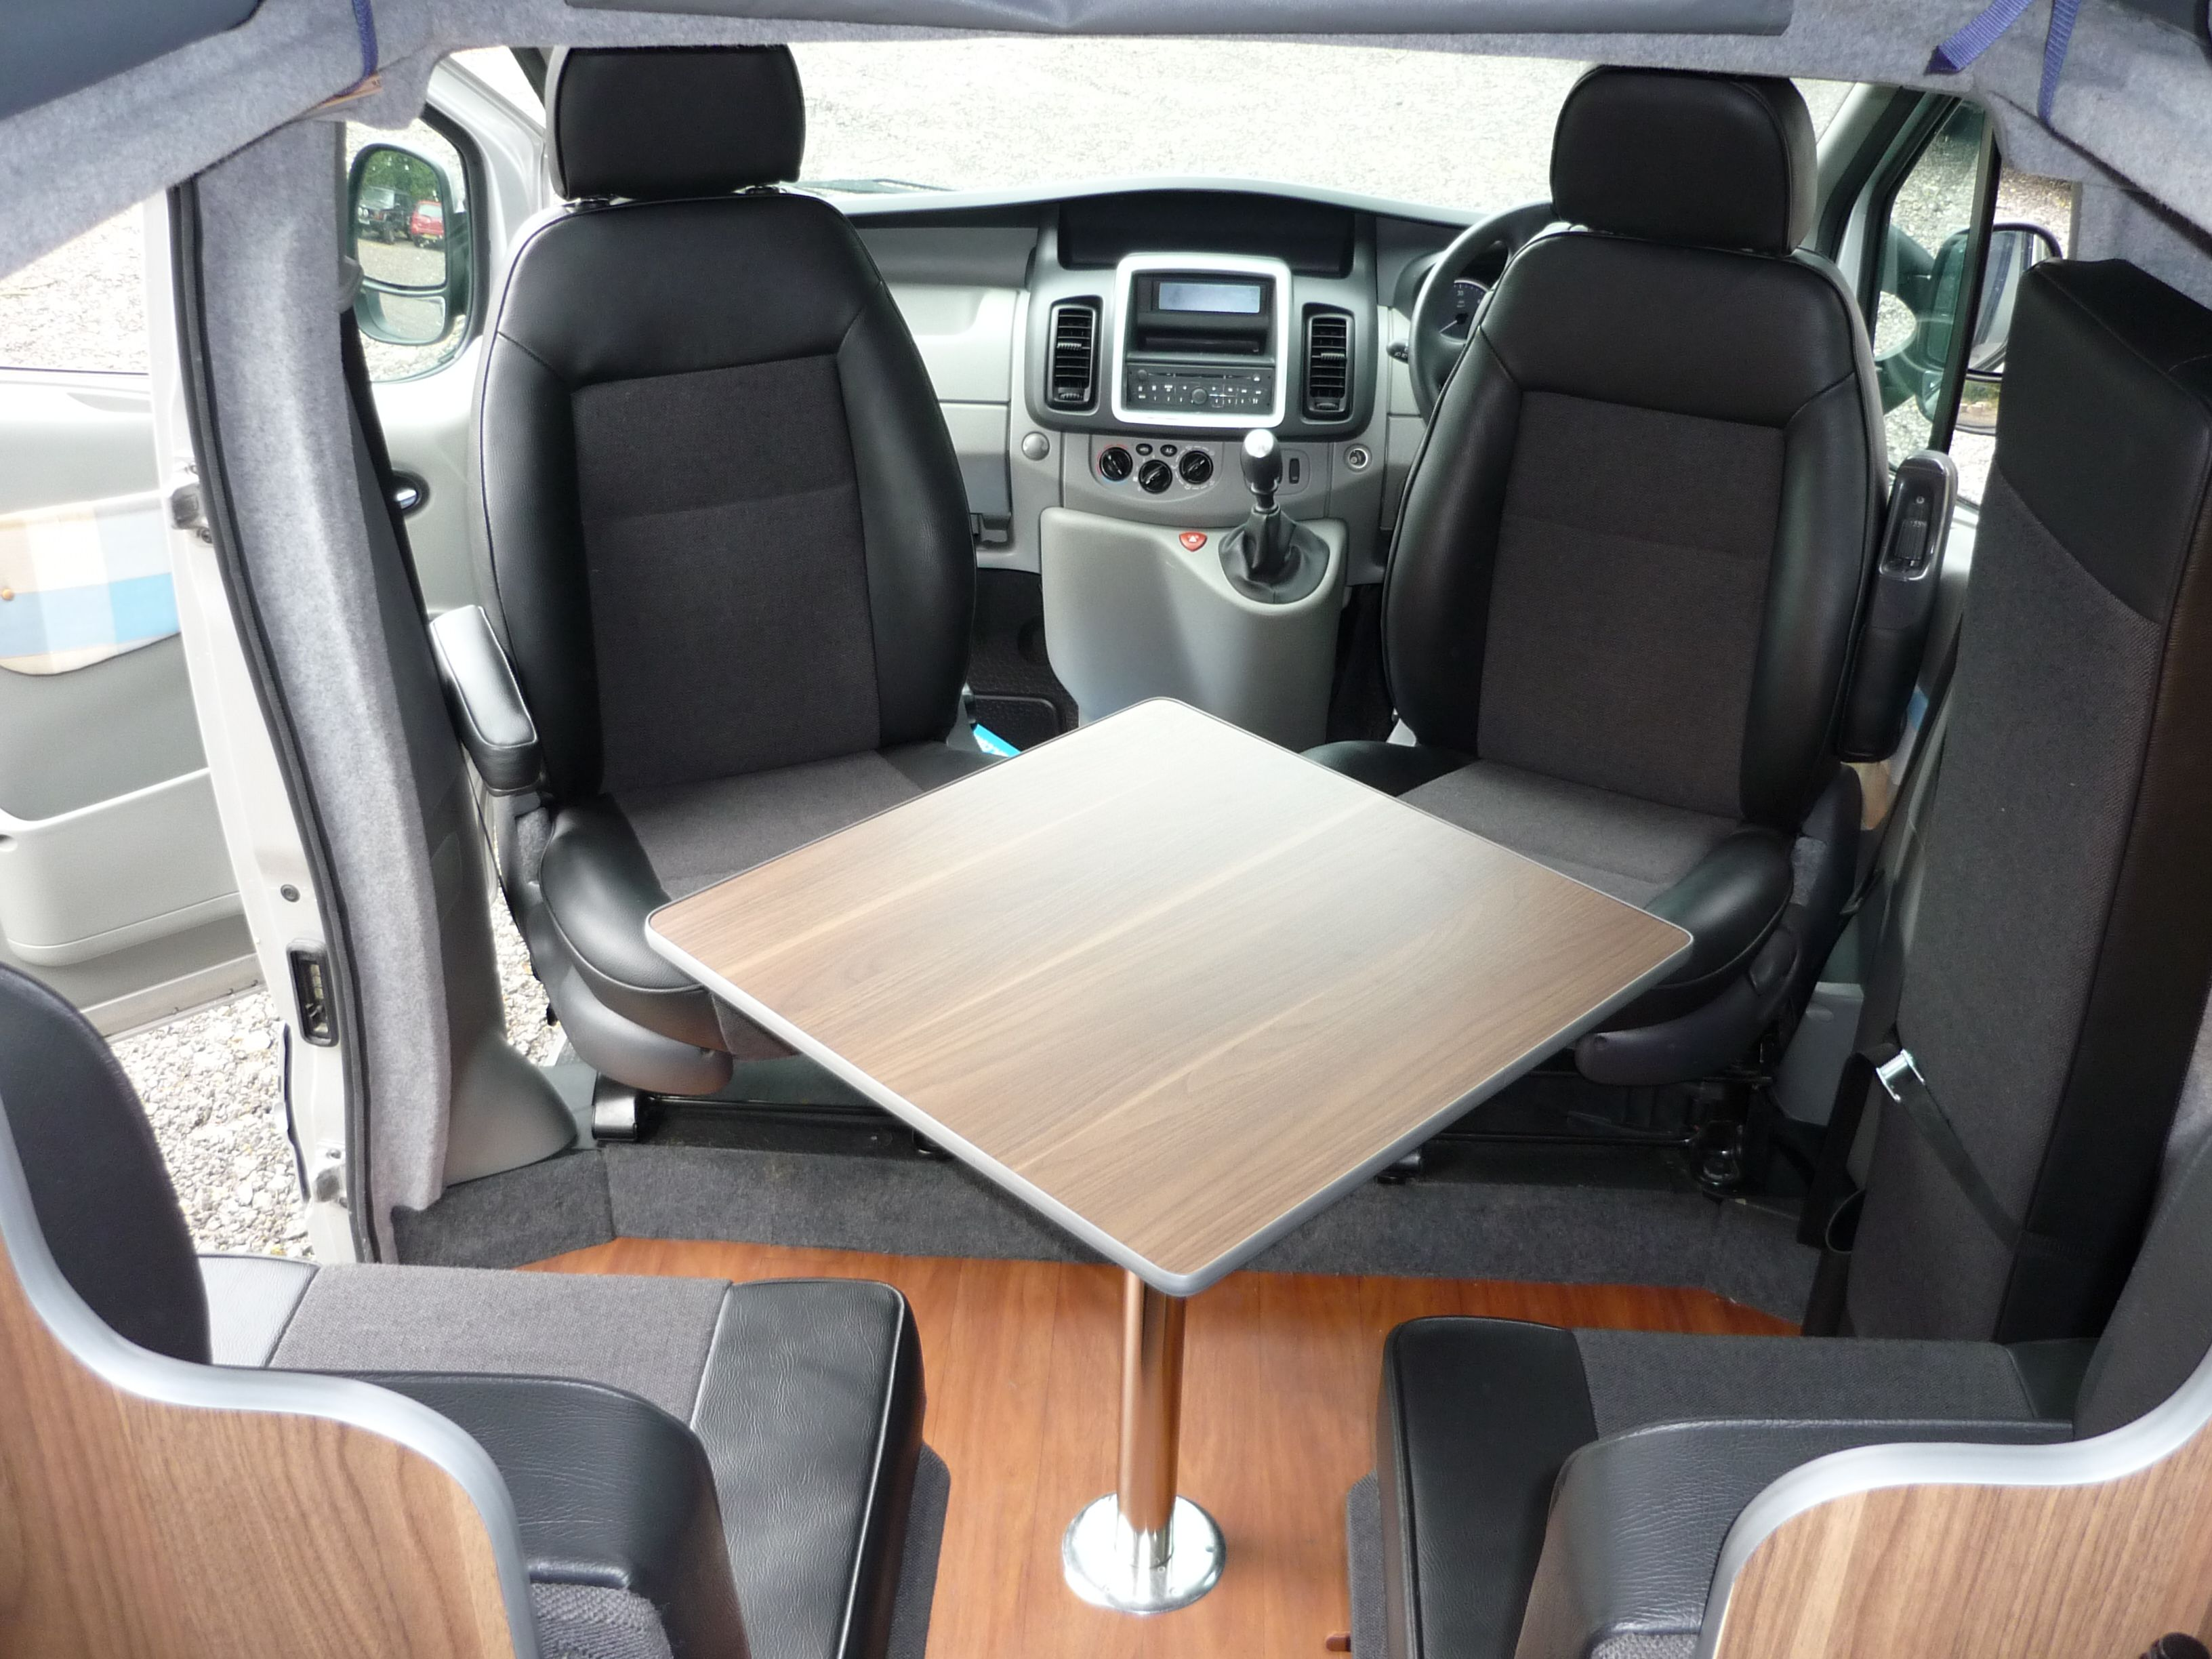 Campervan Conversion With Four Seats Around Table Including Two